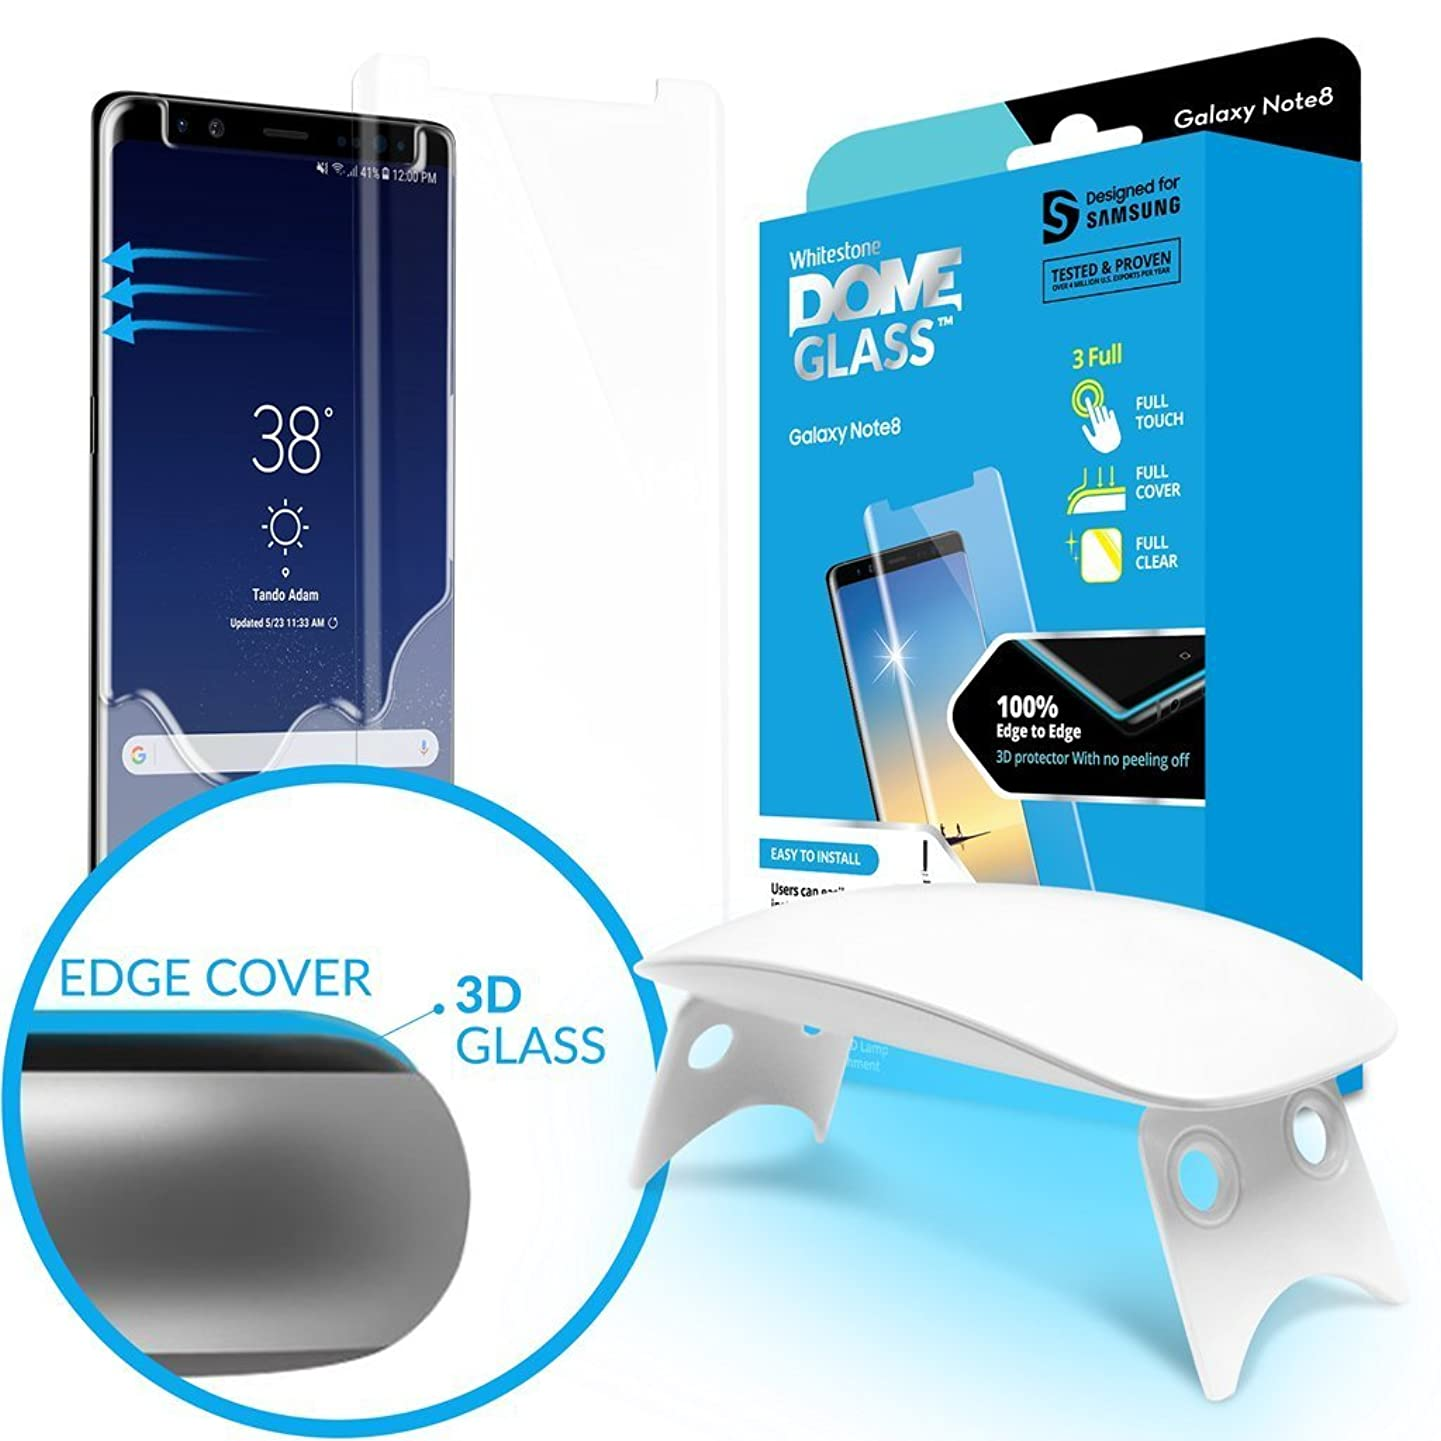 Dome Glass Galaxy Note 8 Screen Protector, Full 3D Curved Edge Tempered Glass Shield [Liquid Dispersion Tech] Easy Install Kit by Whitestone for Samsung Galaxy Note 8 (2017) - 1 Pack hgpwtztdagdnzekg